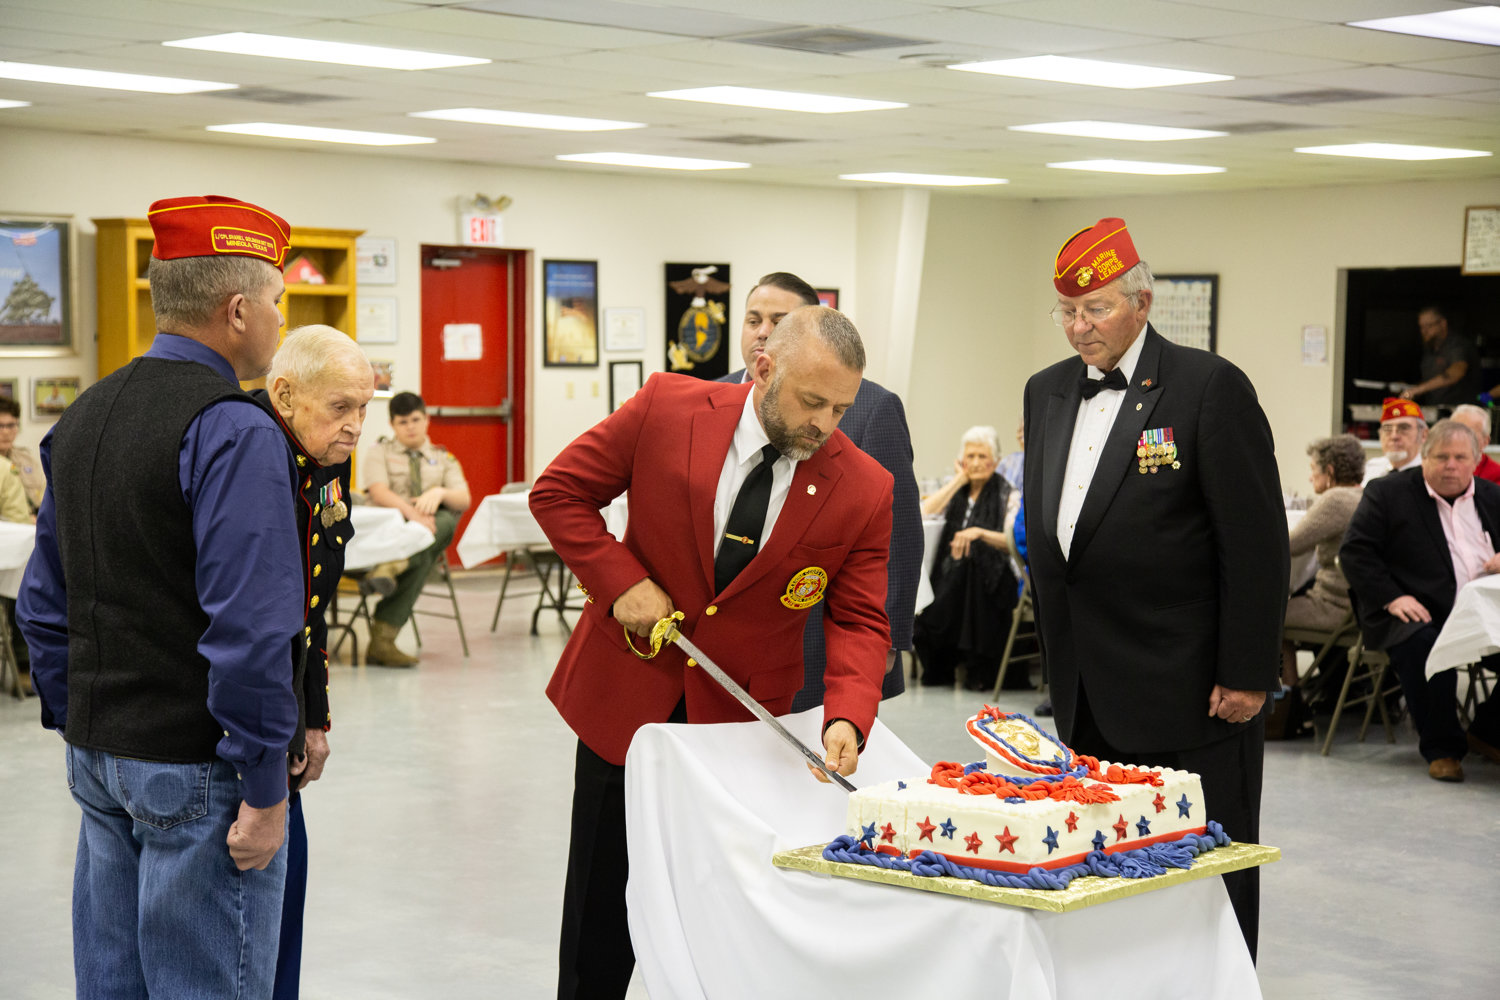 Marine Corps League Commandant Kelly Smith cuts the Marine Corps birth- day cake with the traditional Mameluke sword. The oldest Marine present, PFC James Krodel, and youngest Marine present, Lance Corporal Brandon Baade, watch with cake escorts James Biesheuvel and Mike Jernigan.